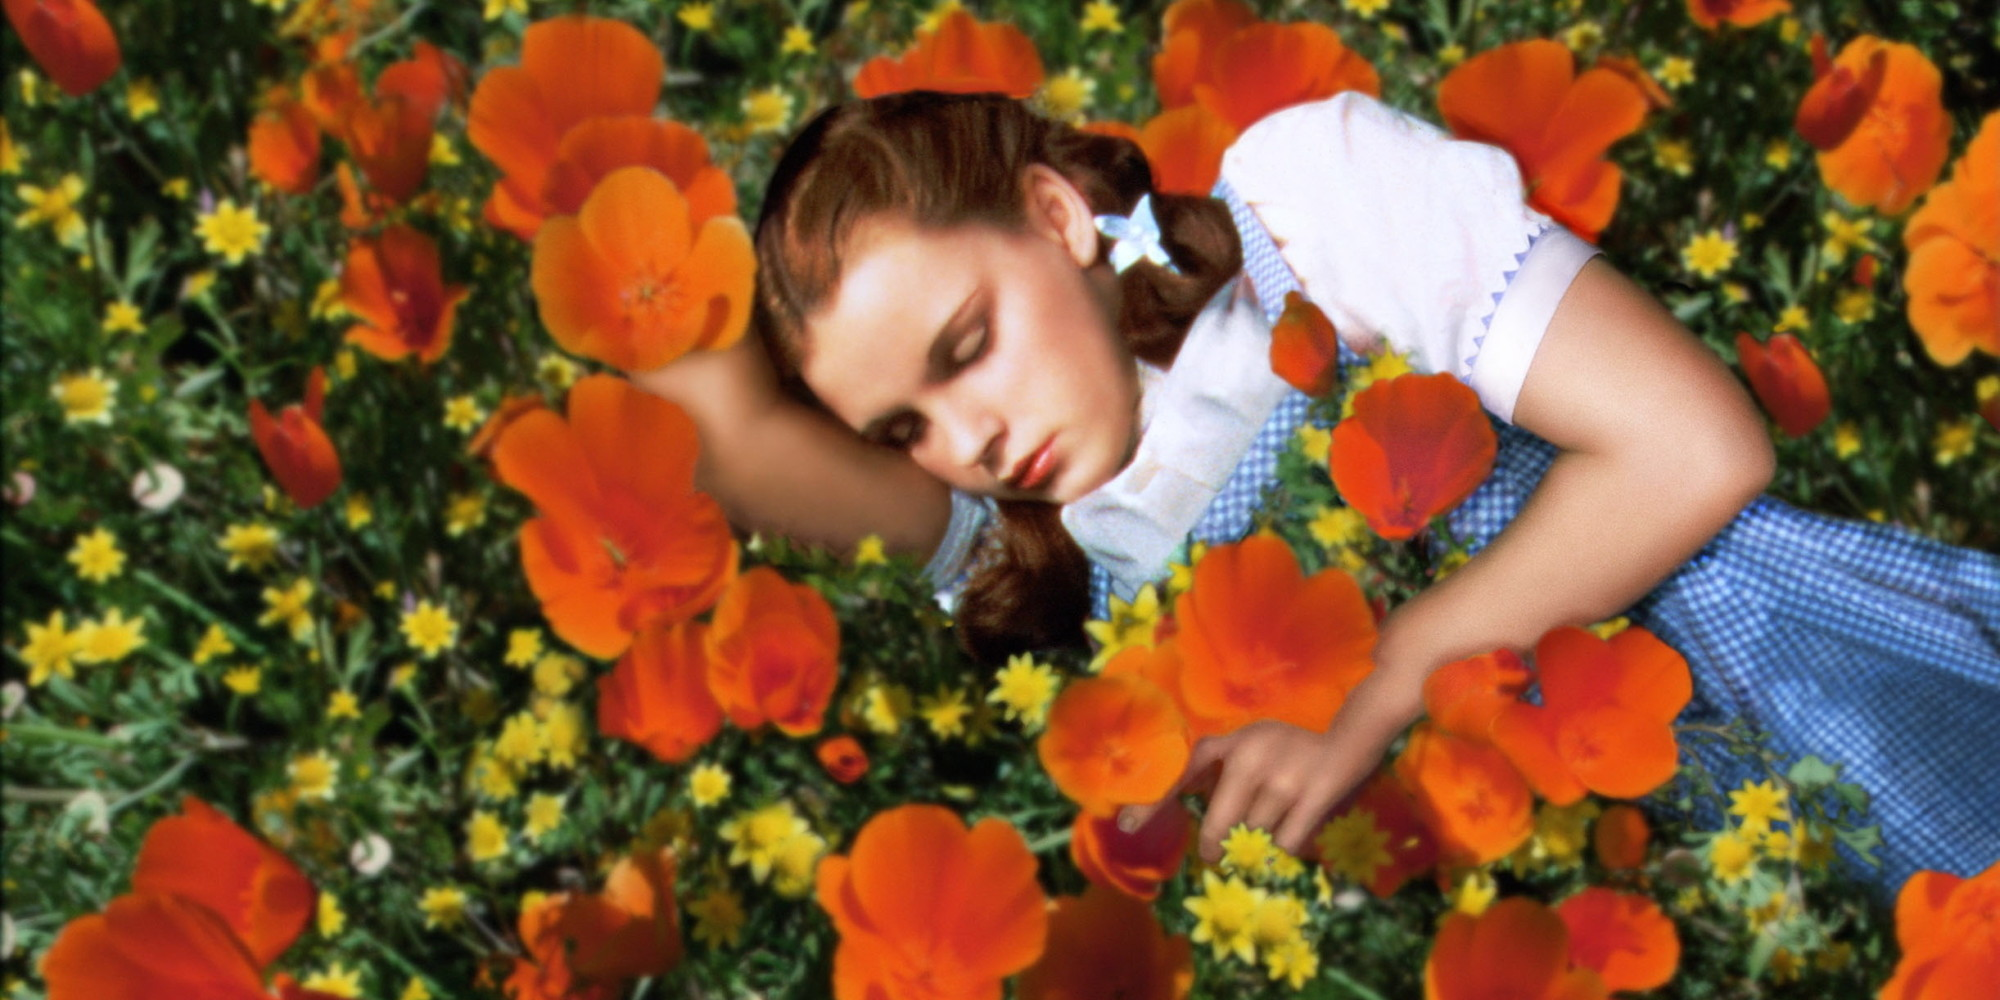 Judy Garland (1922-1969), US actress and singer, sleeping in a field of red poppies and yellow flowers in a publicity still issued for the film, 'The Wizard of Oz', USA, 1939. The musical, directed by Victor Fleming (1889-1949), starred Garland as 'Dorothy'. (Photo by Silver Screen Collection/Getty Images)